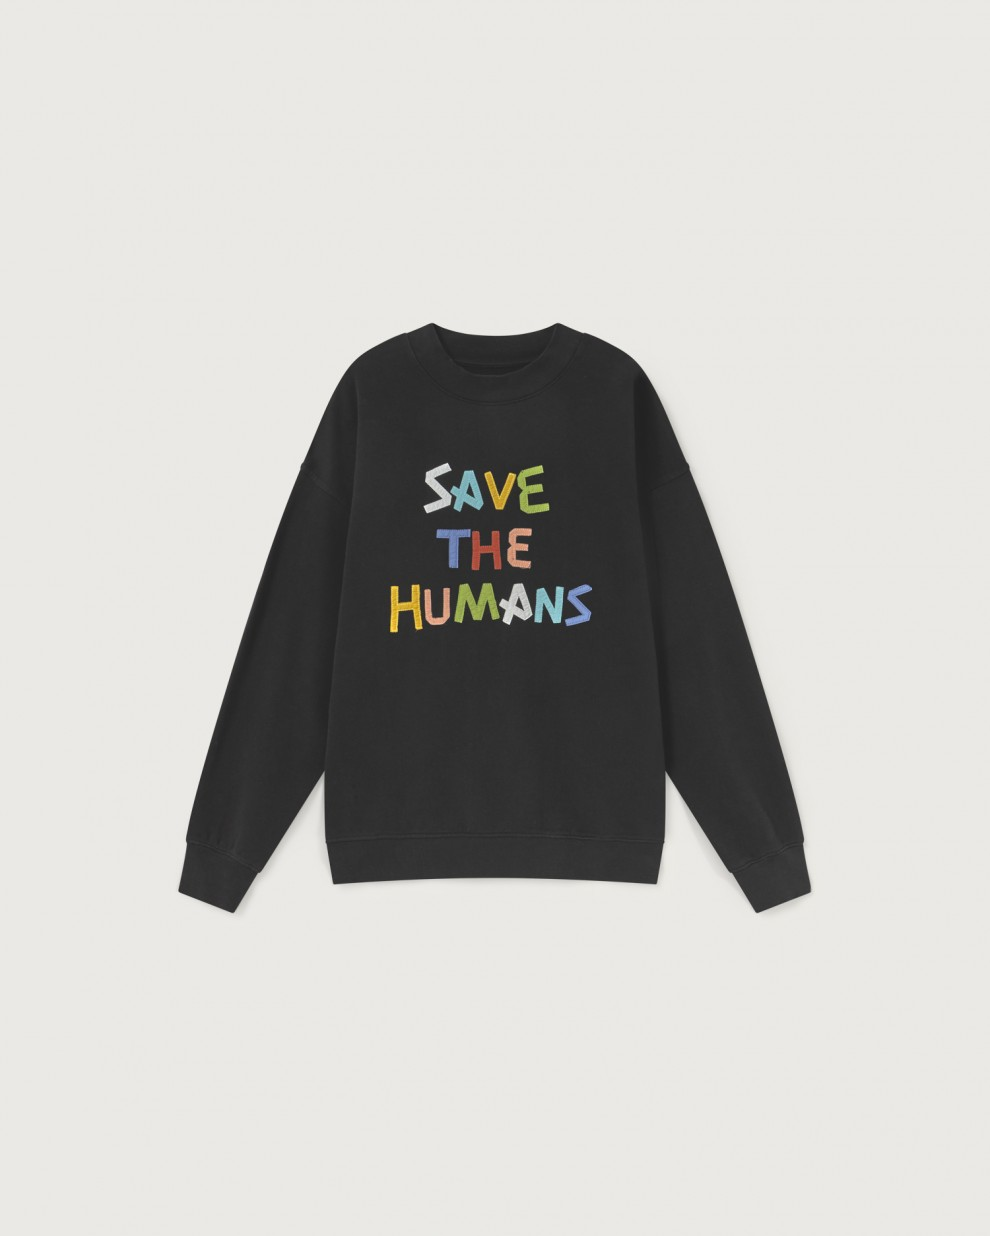 SAVE THE HUMANS SWEATSHIRT